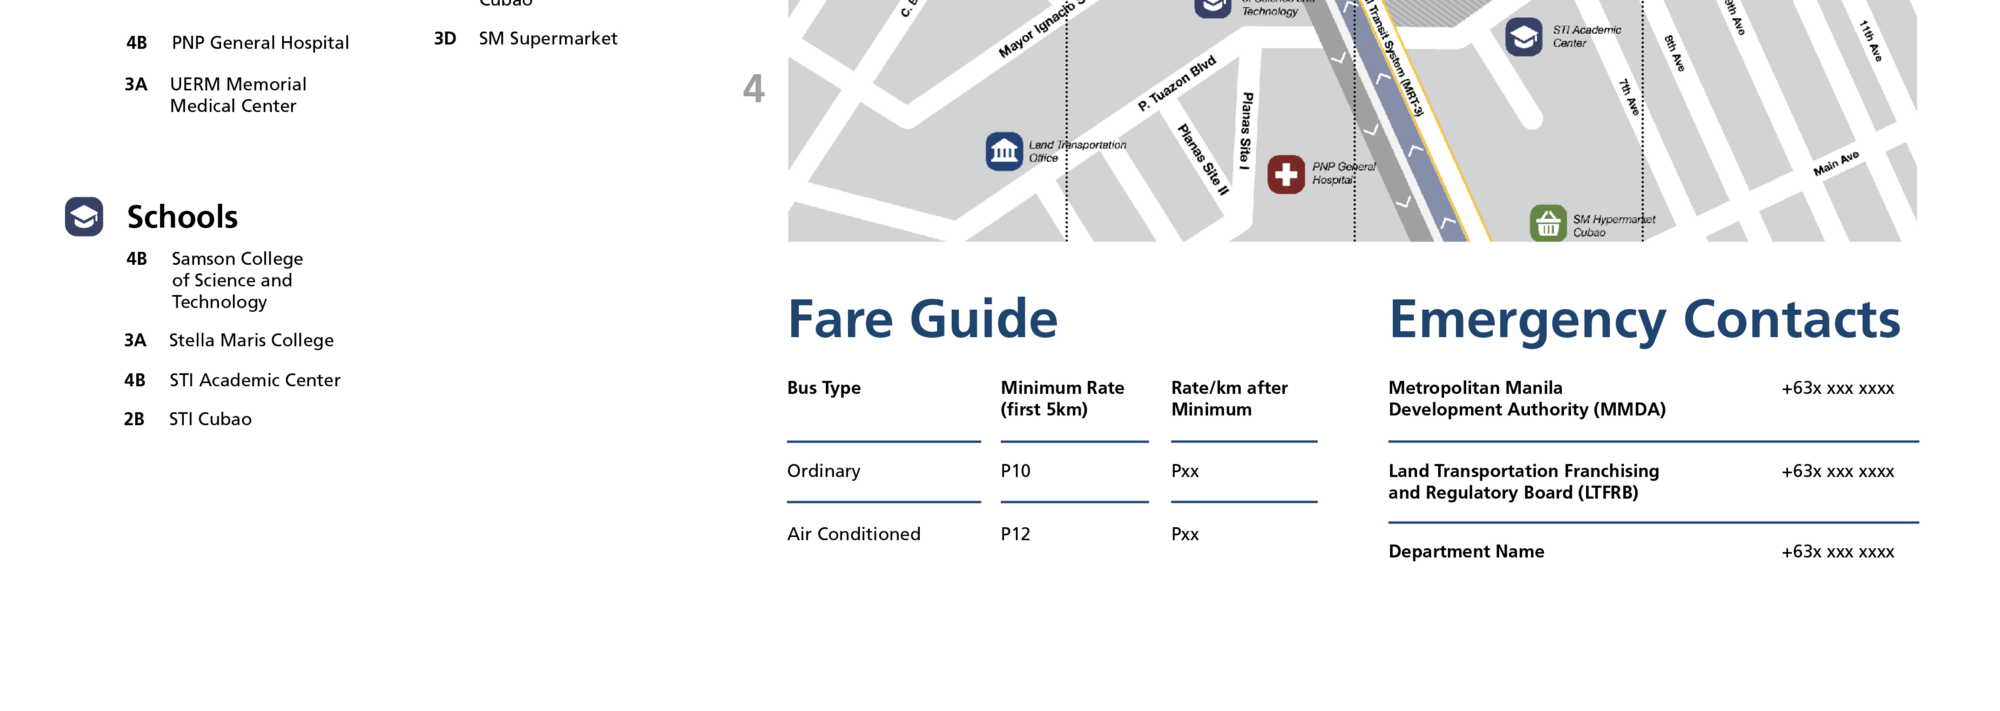 zoomed in bottom section of area map showing fare guide and relevant phone numbers